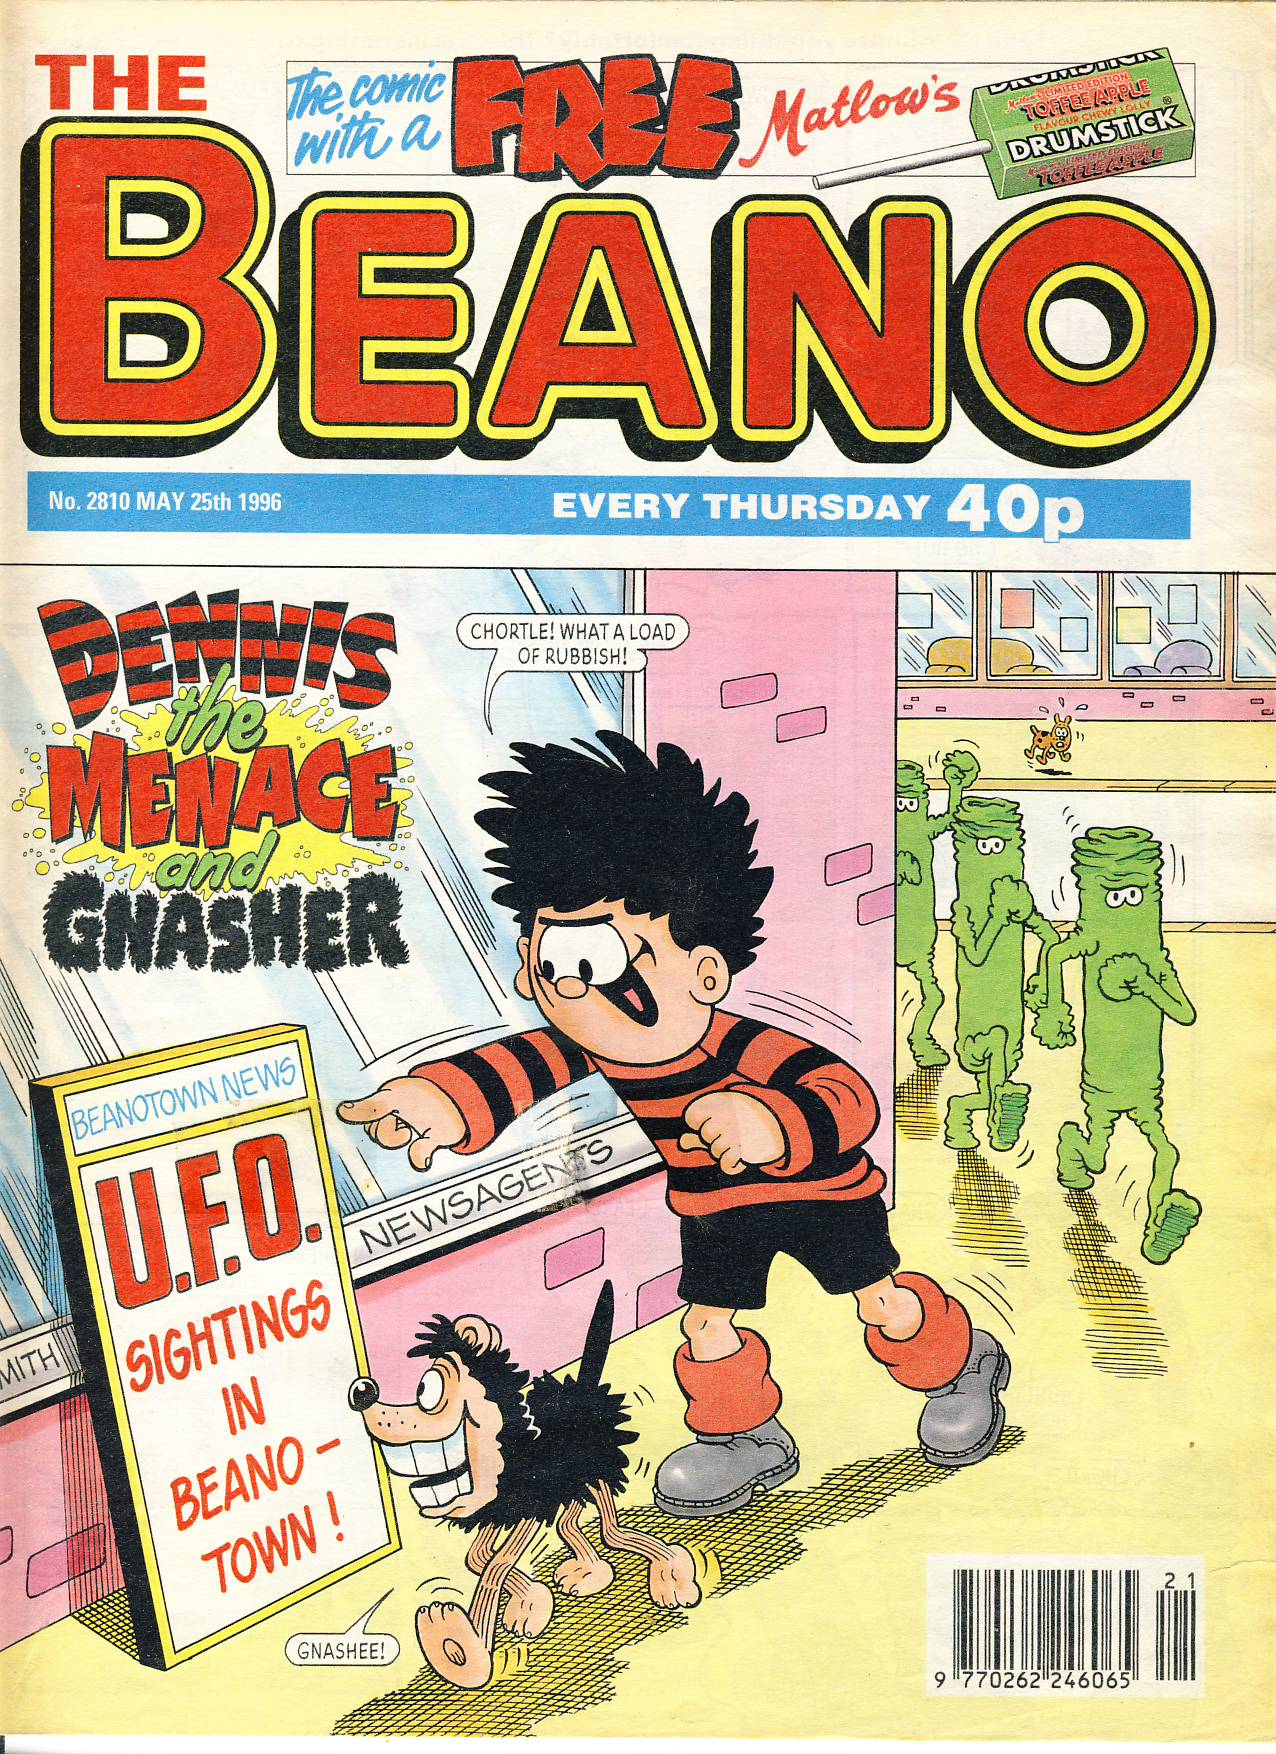 1996 May 25th BEANO vintage comic Good Gift Christmas Present Birthday Anniversary ref202 a pre-owned item in very good read condition.